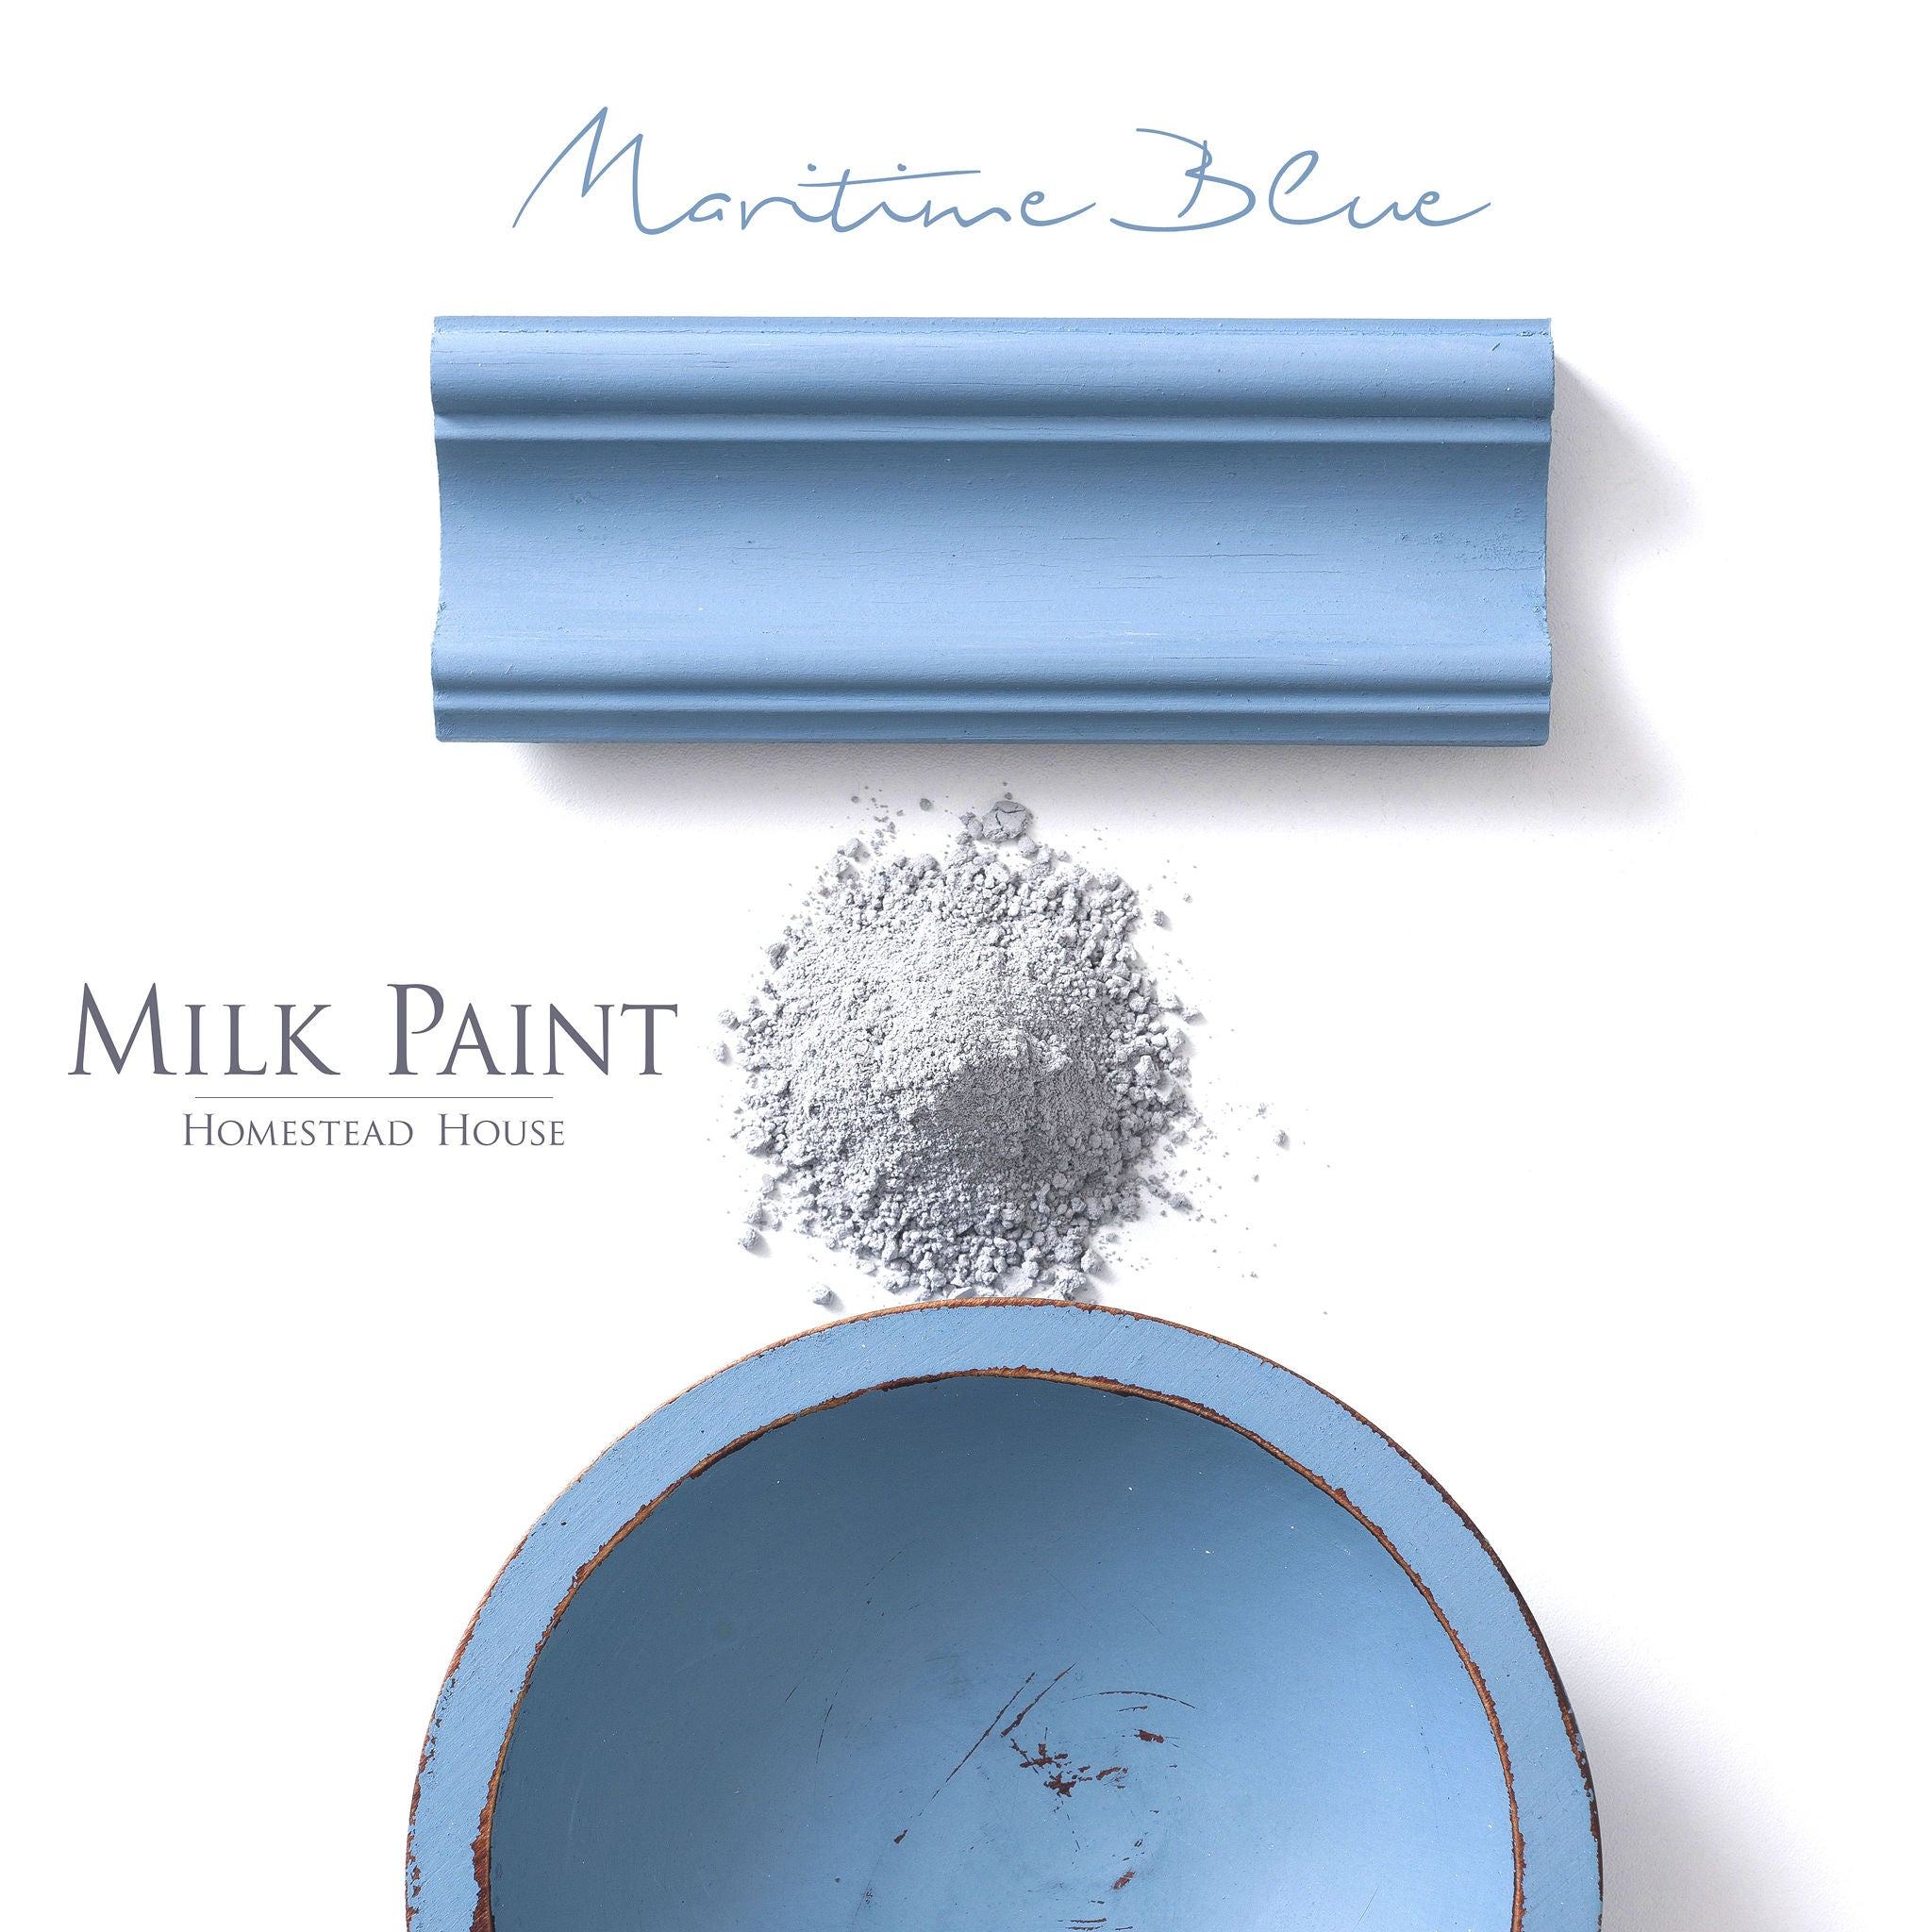 Maritime Blue Milk Paint by Homestead House @ The Painted Heirloom